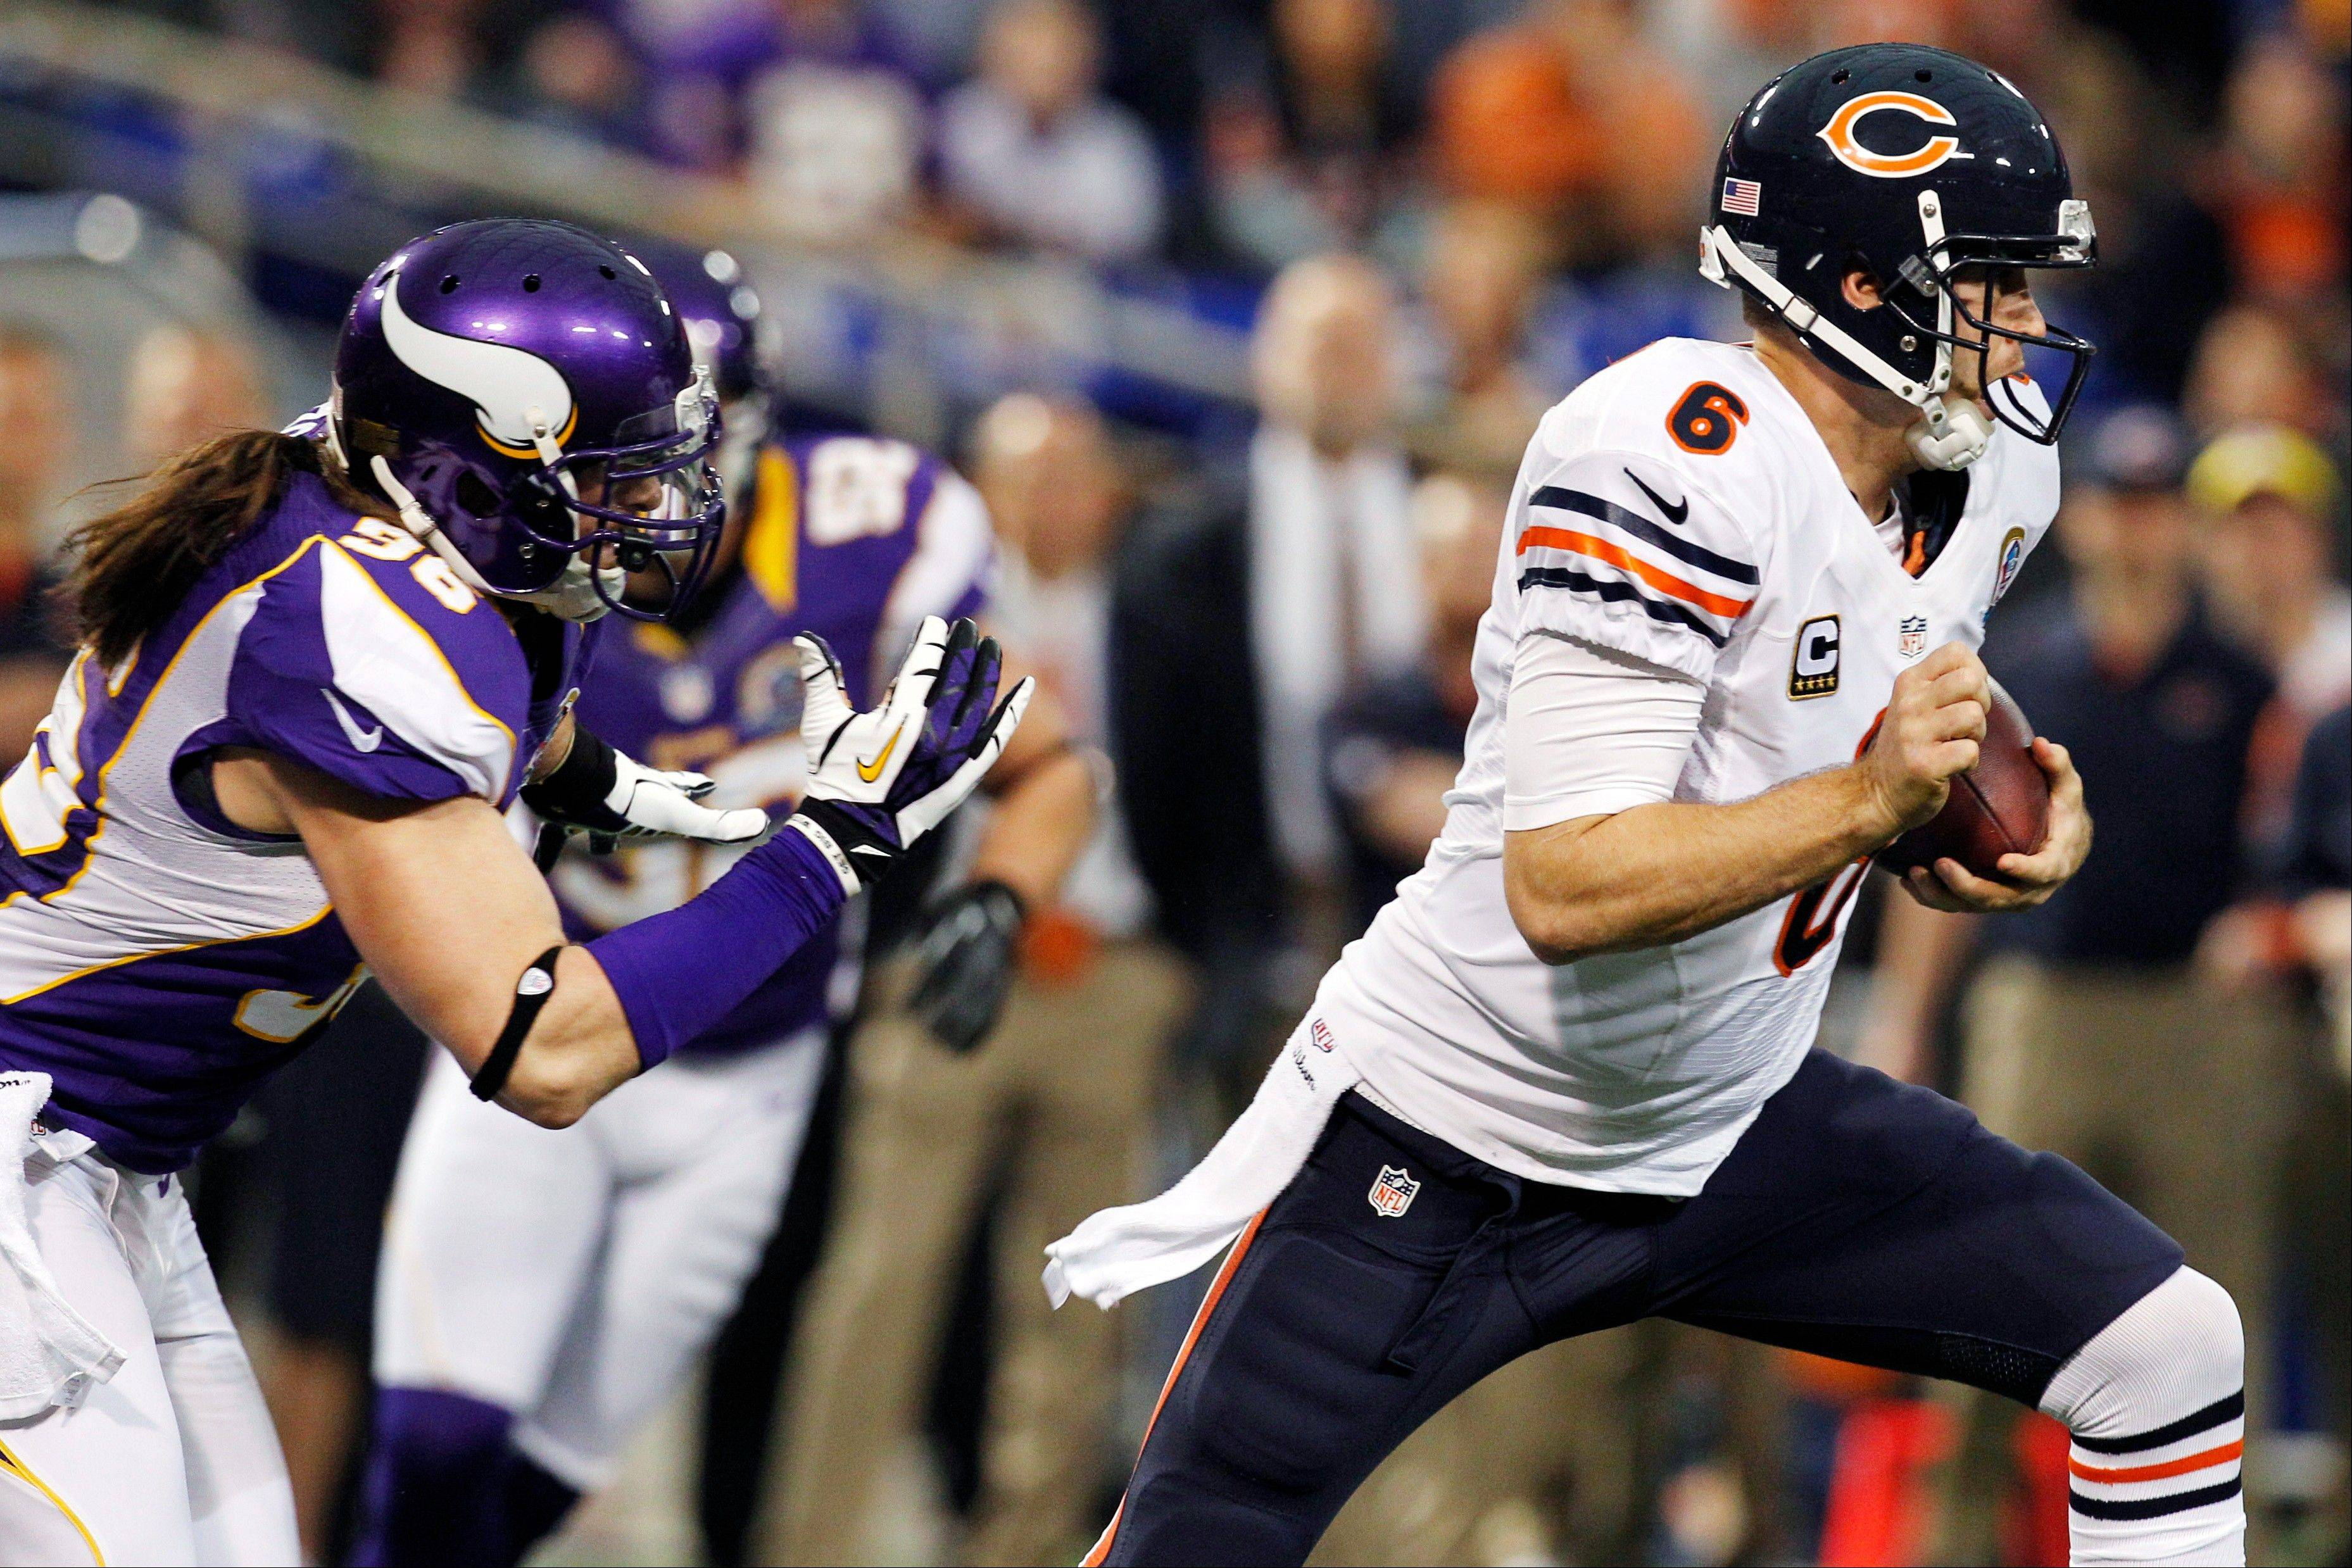 Chicago Bears quarterback Jay Cutler, right, runs from Minnesota Vikings defensive end Brian Robison during the first half Sunday in Minneapolis. Hopefully he won't have to scramble so much against Green Bay.